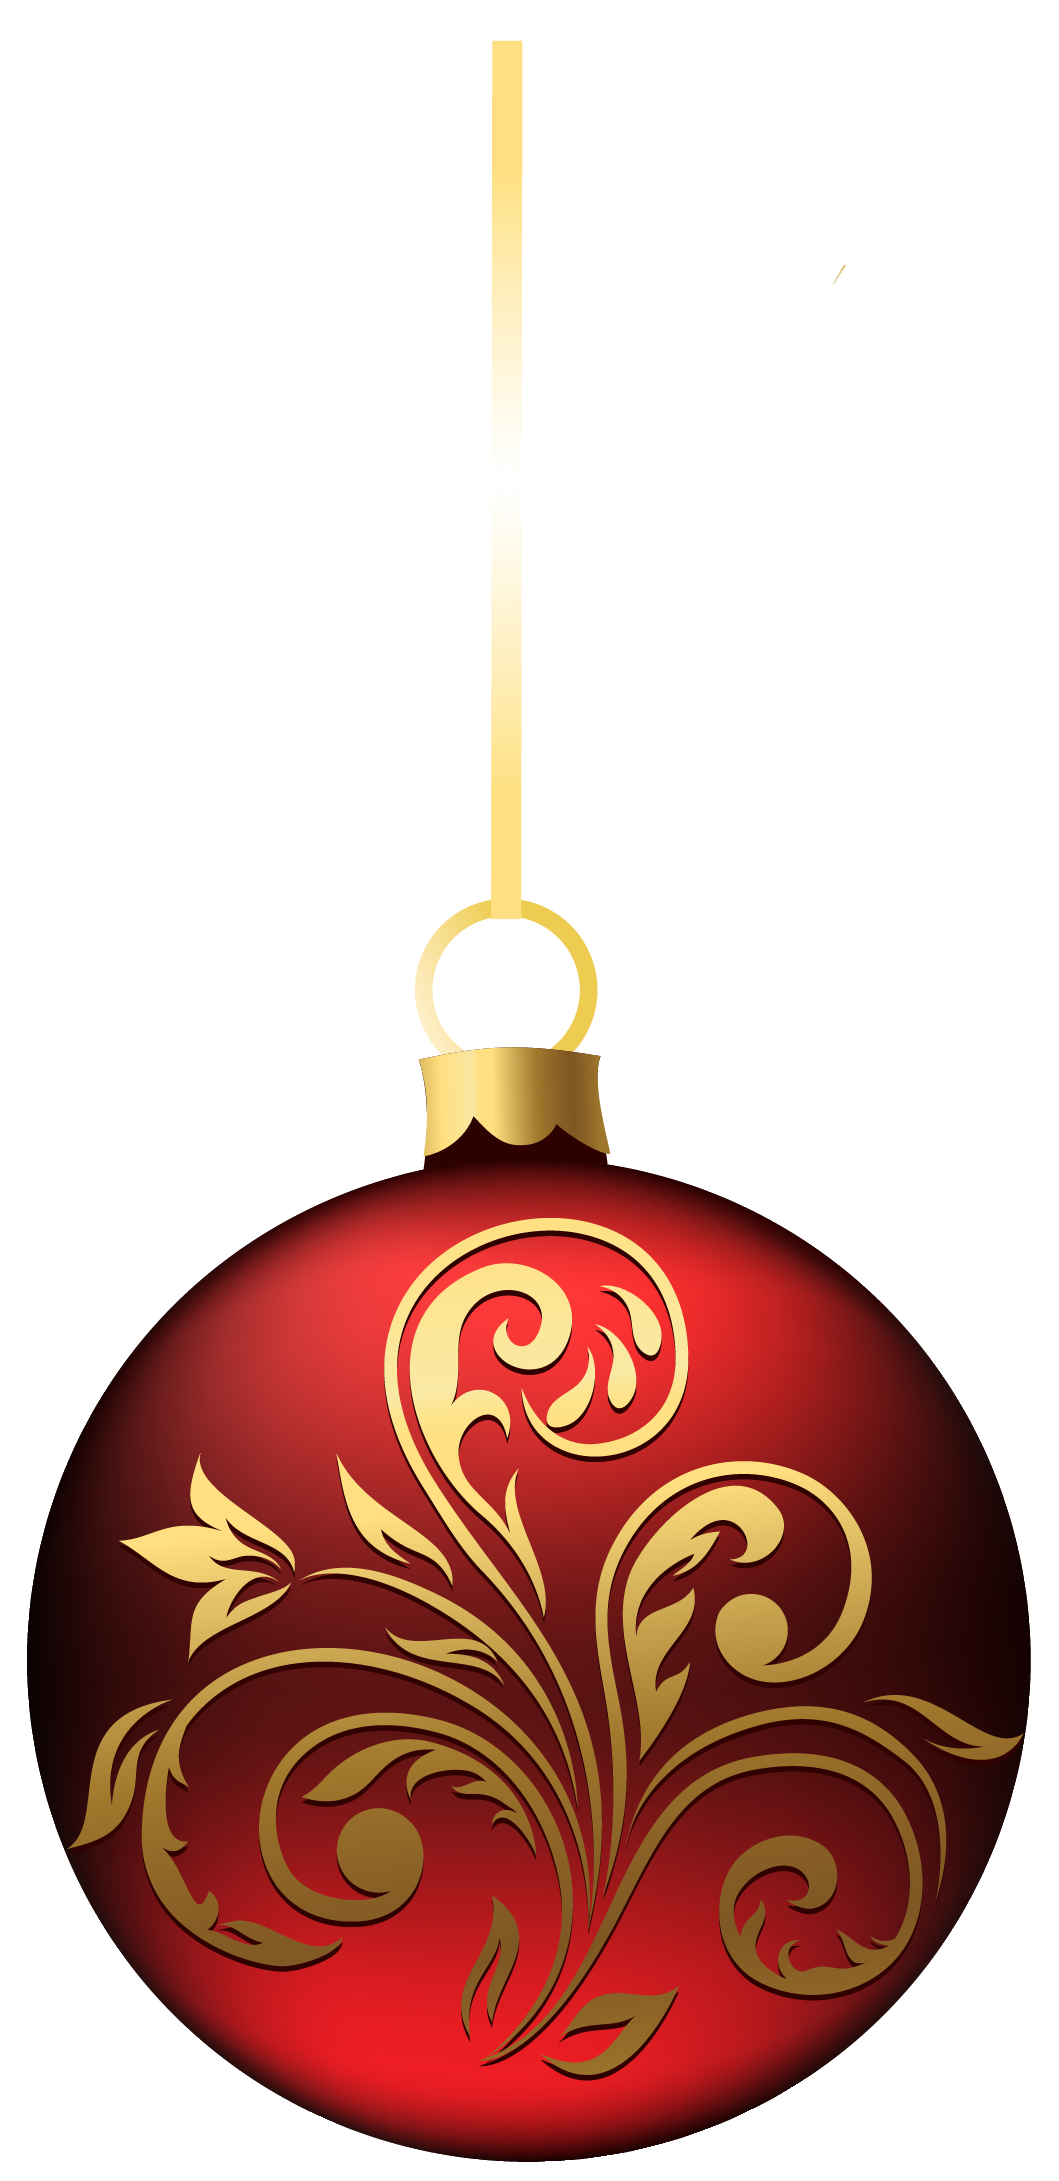 Fancy christmas ornaments background png. Awesome bulb ornament